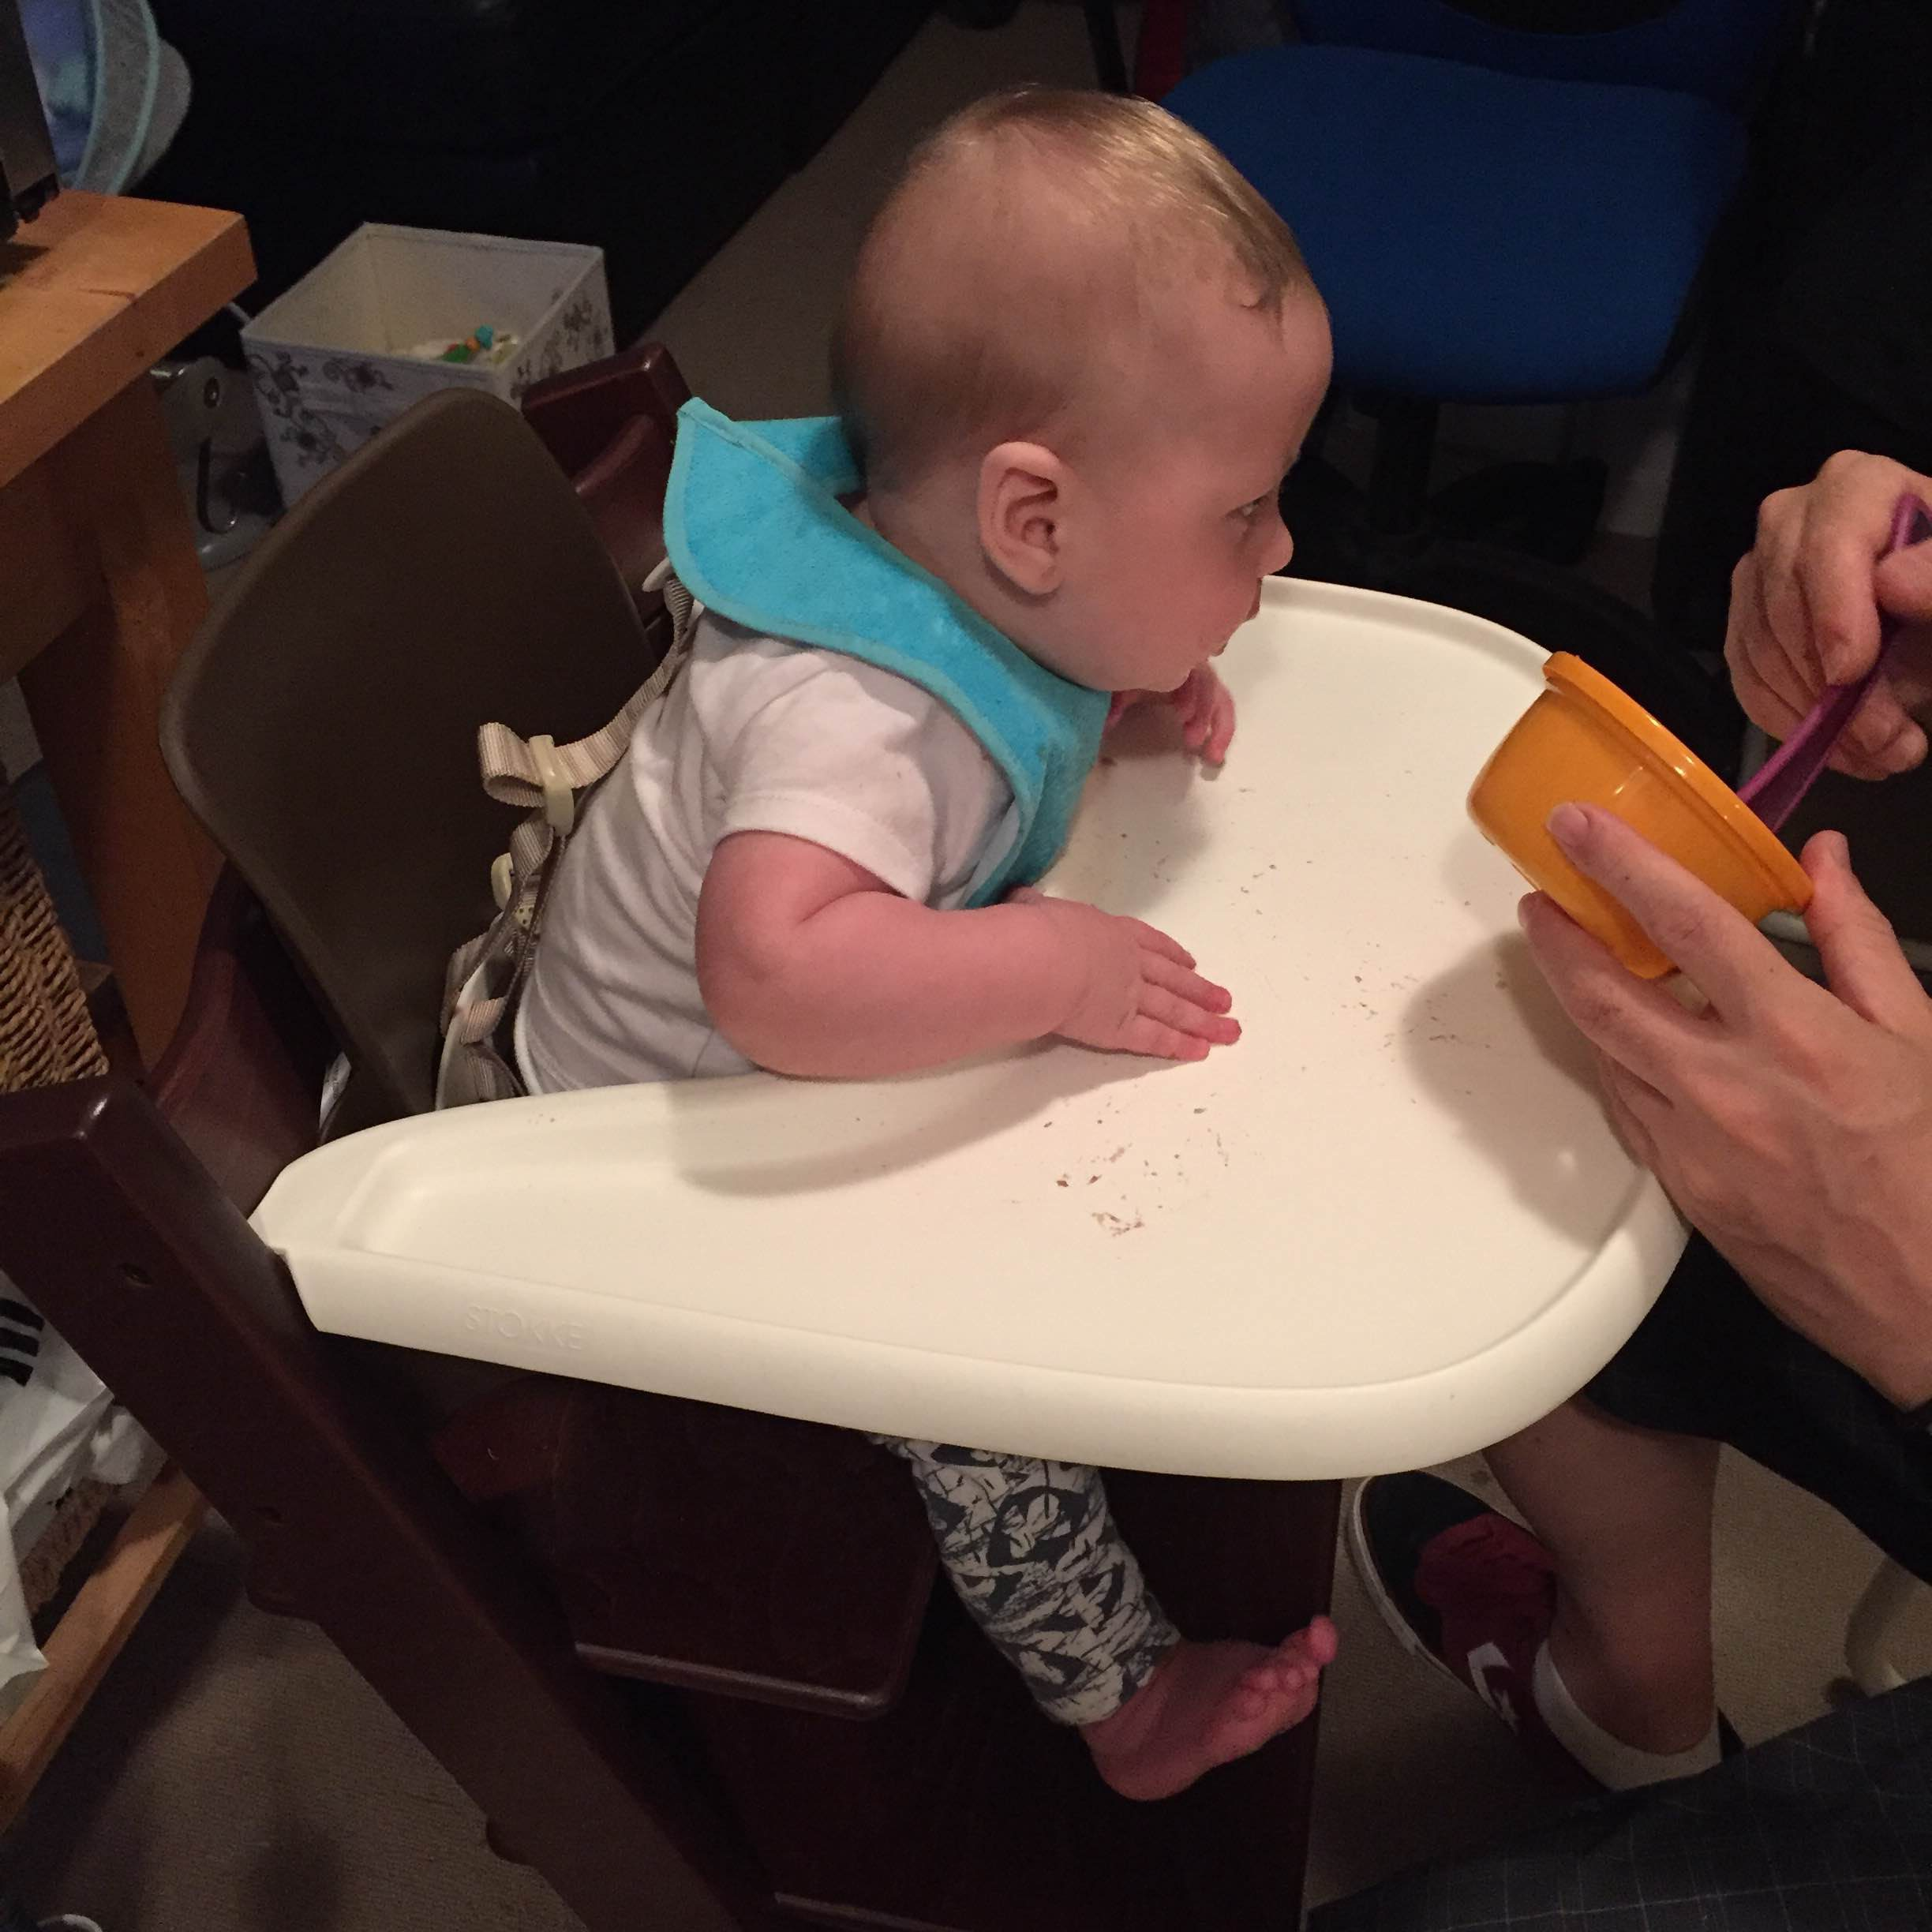 Seb eating at high chair